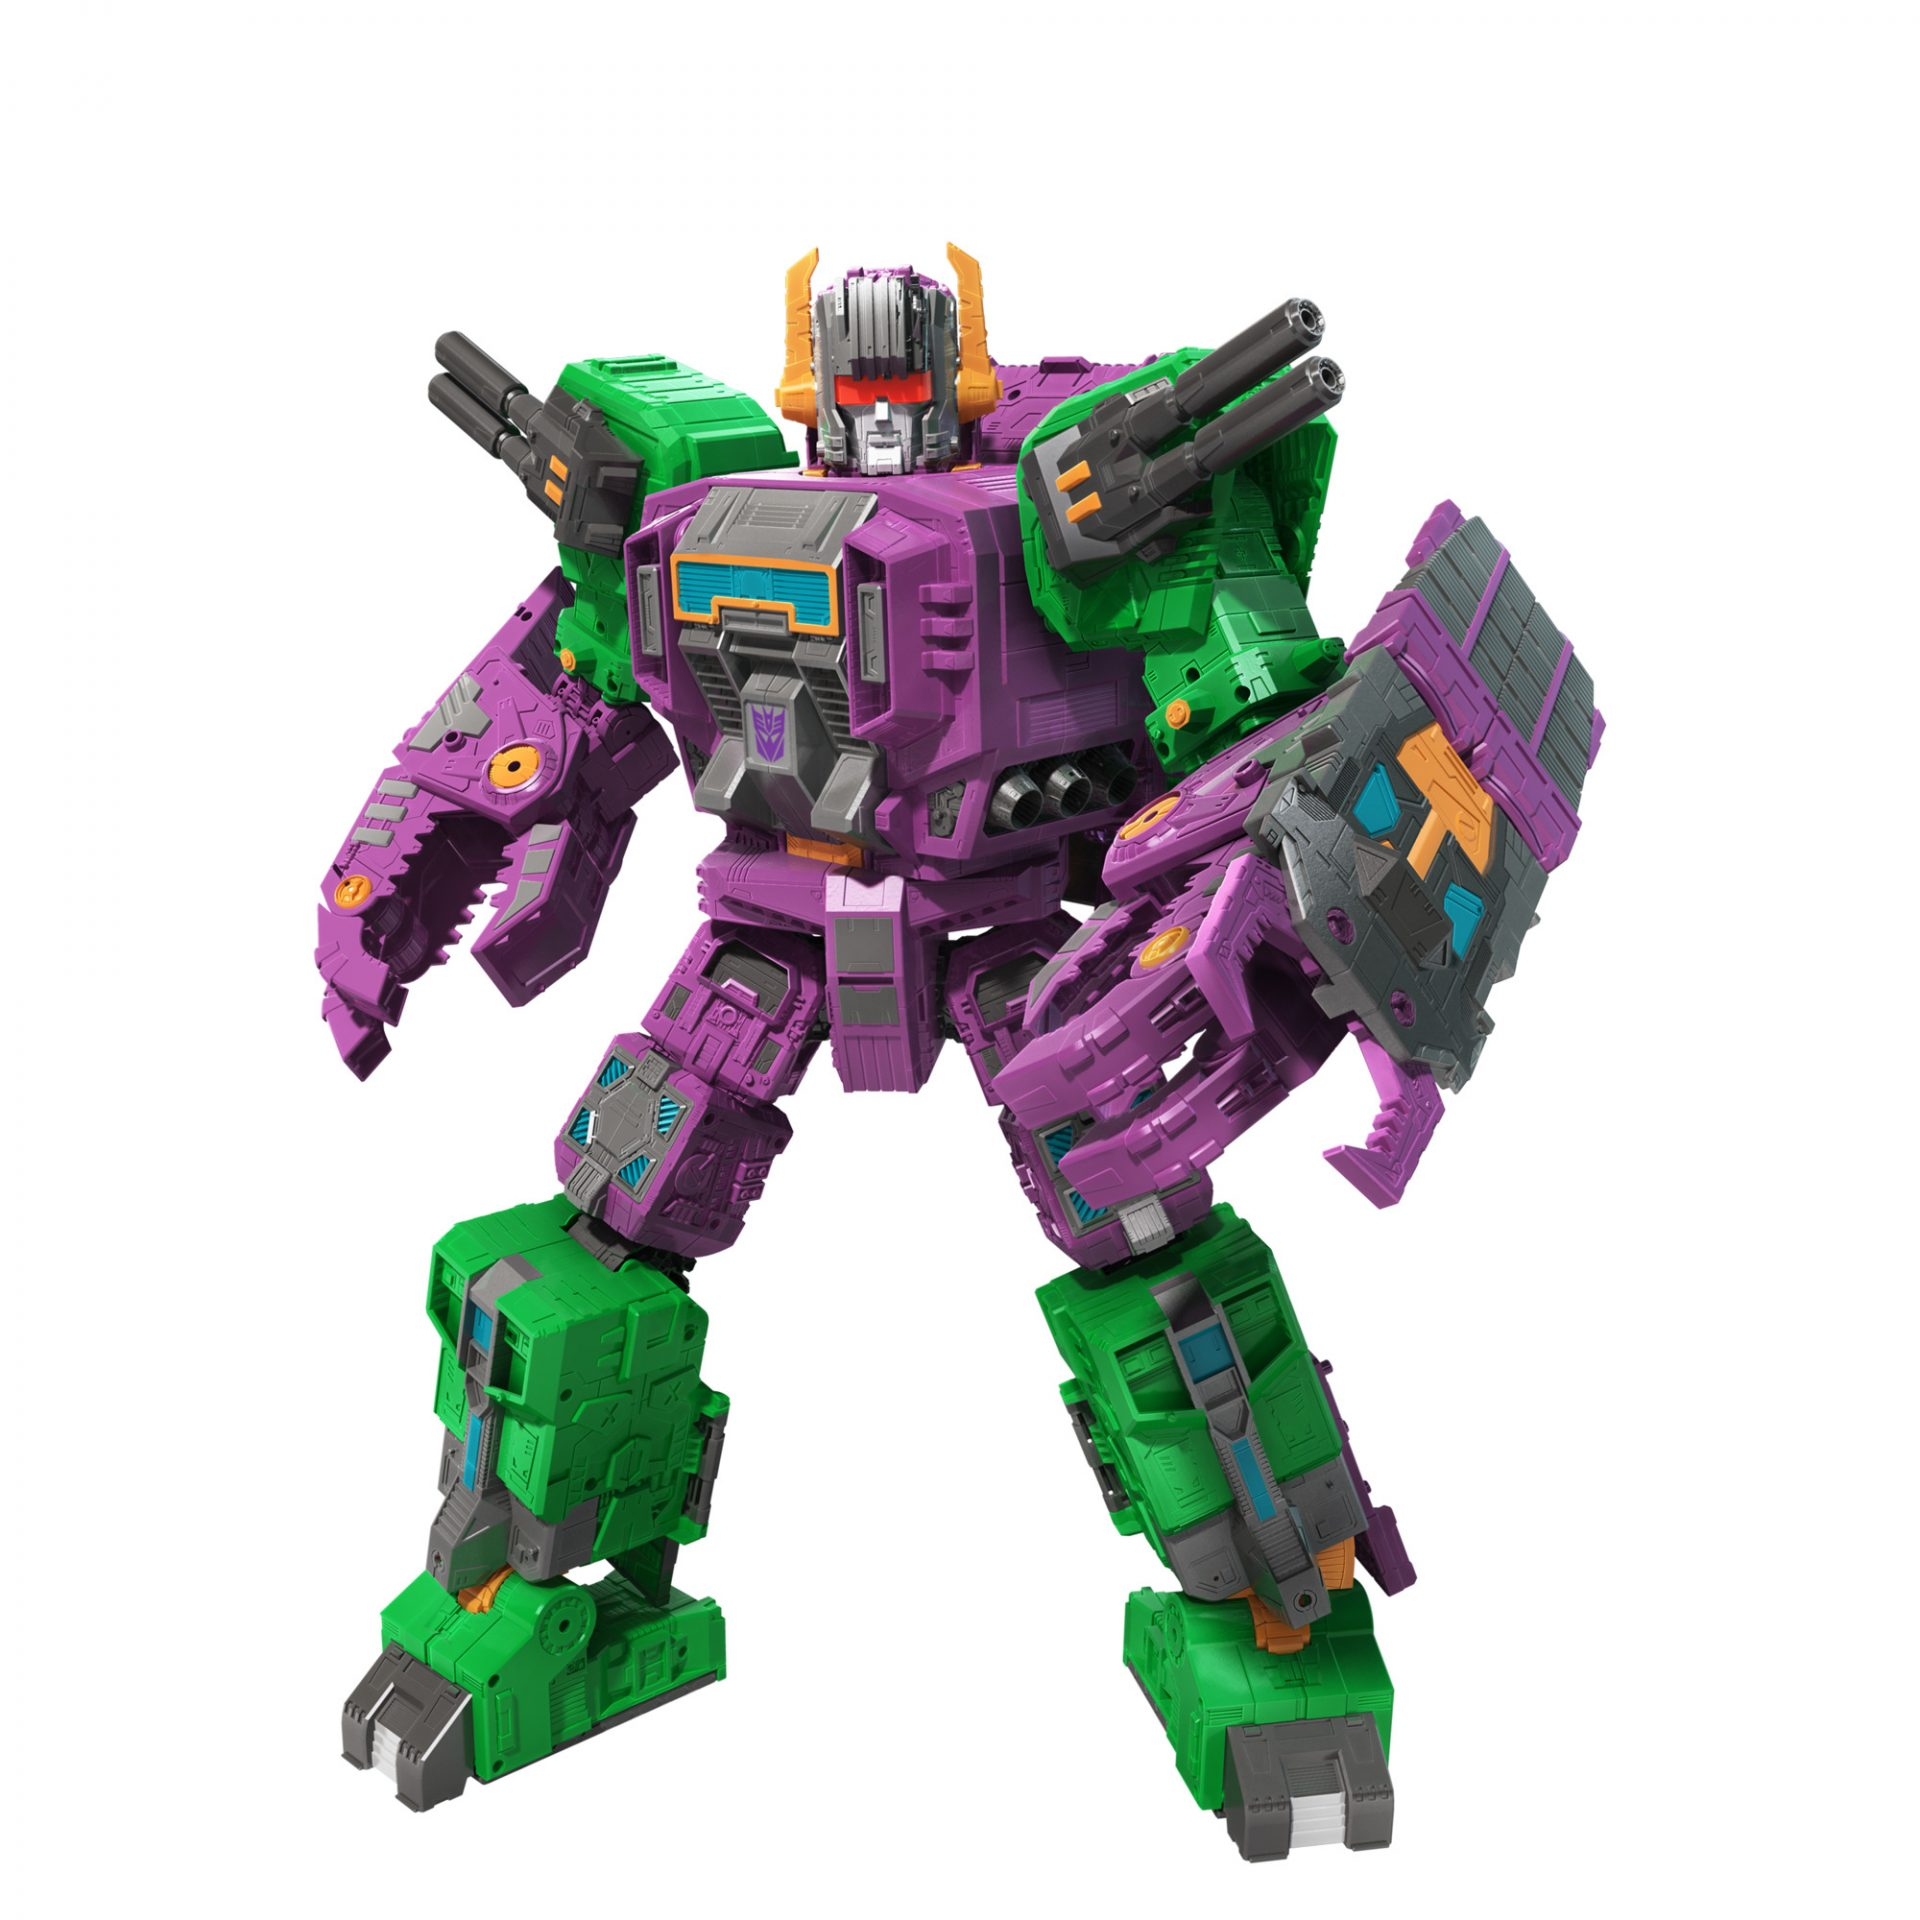 Hasbro Unleashes Tons of New Toys in 2020_79